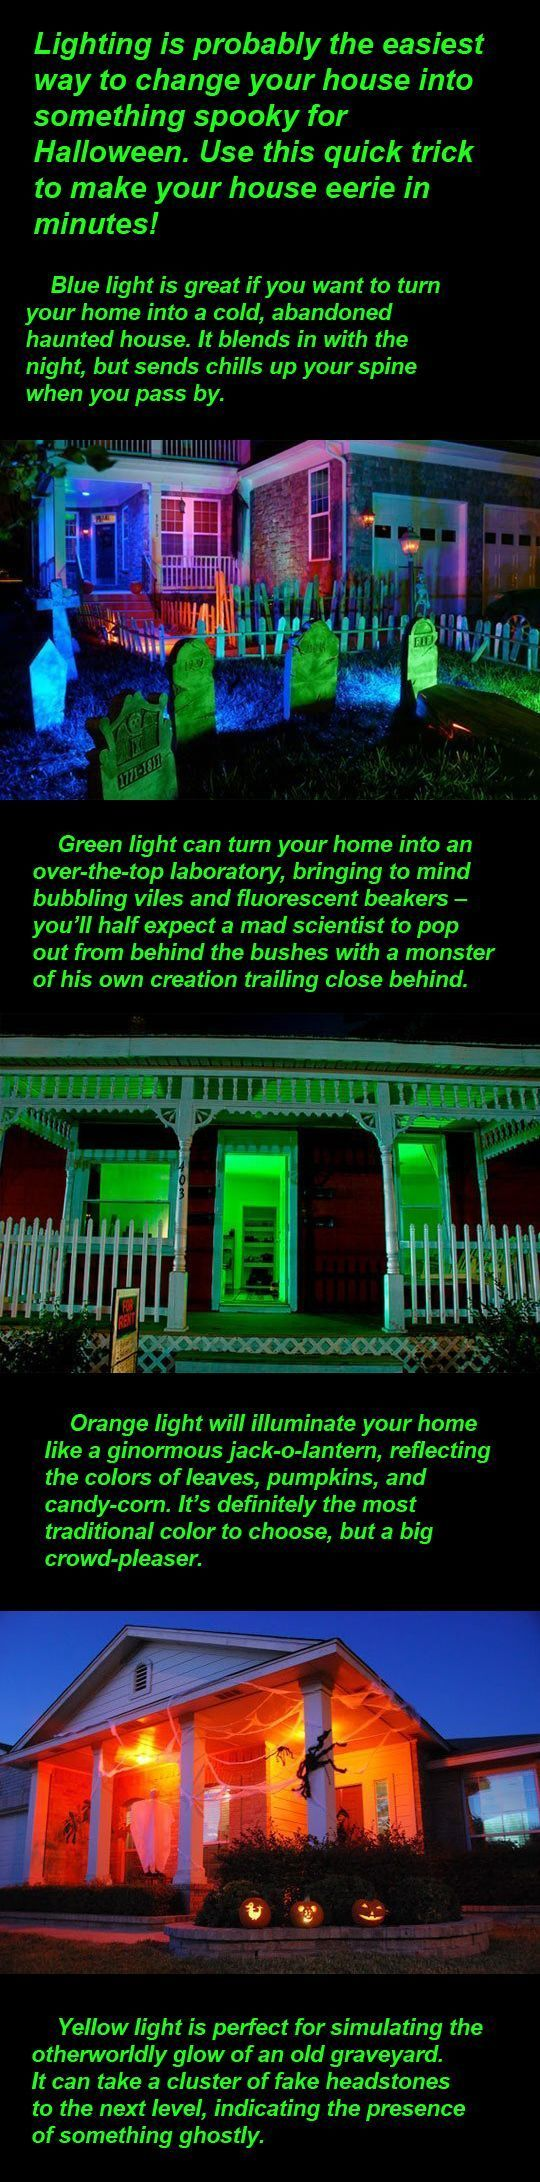 Use lights to make your house even spookier at Halloween! I used green bulbs in my porch light last year to make it look spooky!